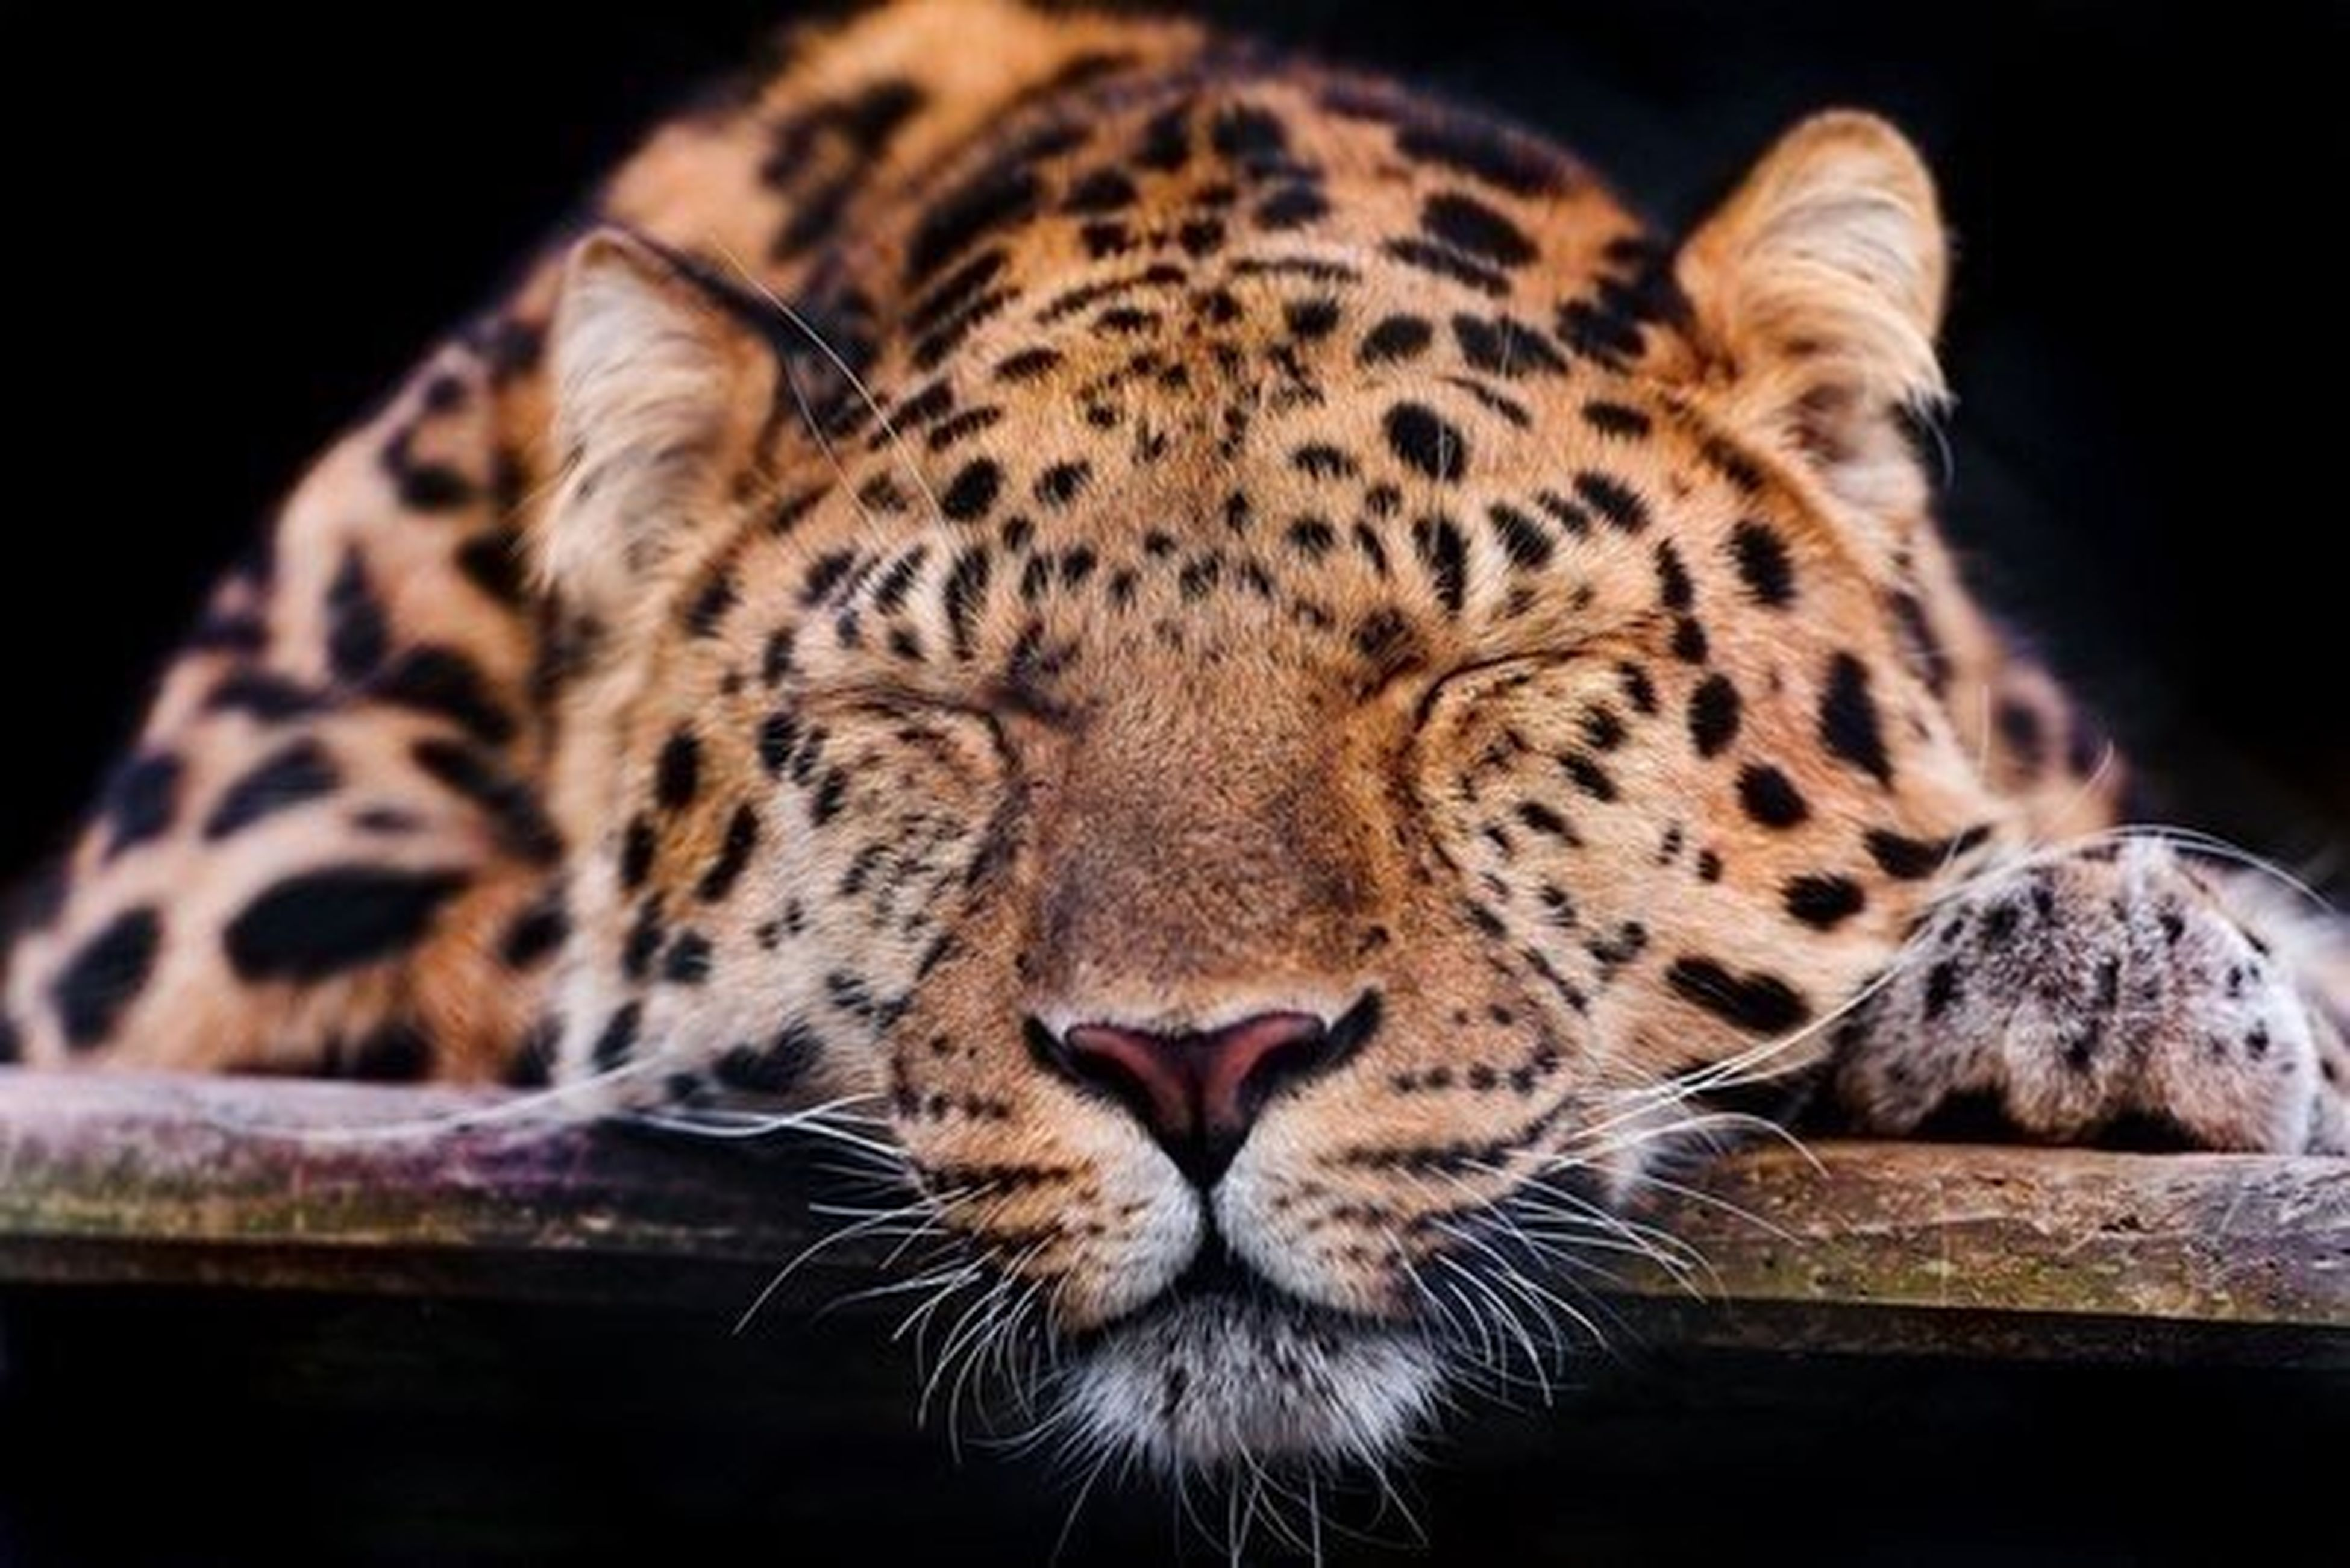 animal themes, one animal, mammal, feline, whisker, tiger, animal markings, domestic cat, close-up, cat, animals in the wild, wildlife, animal head, relaxation, natural pattern, lying down, big cat, resting, indoors, safari animals